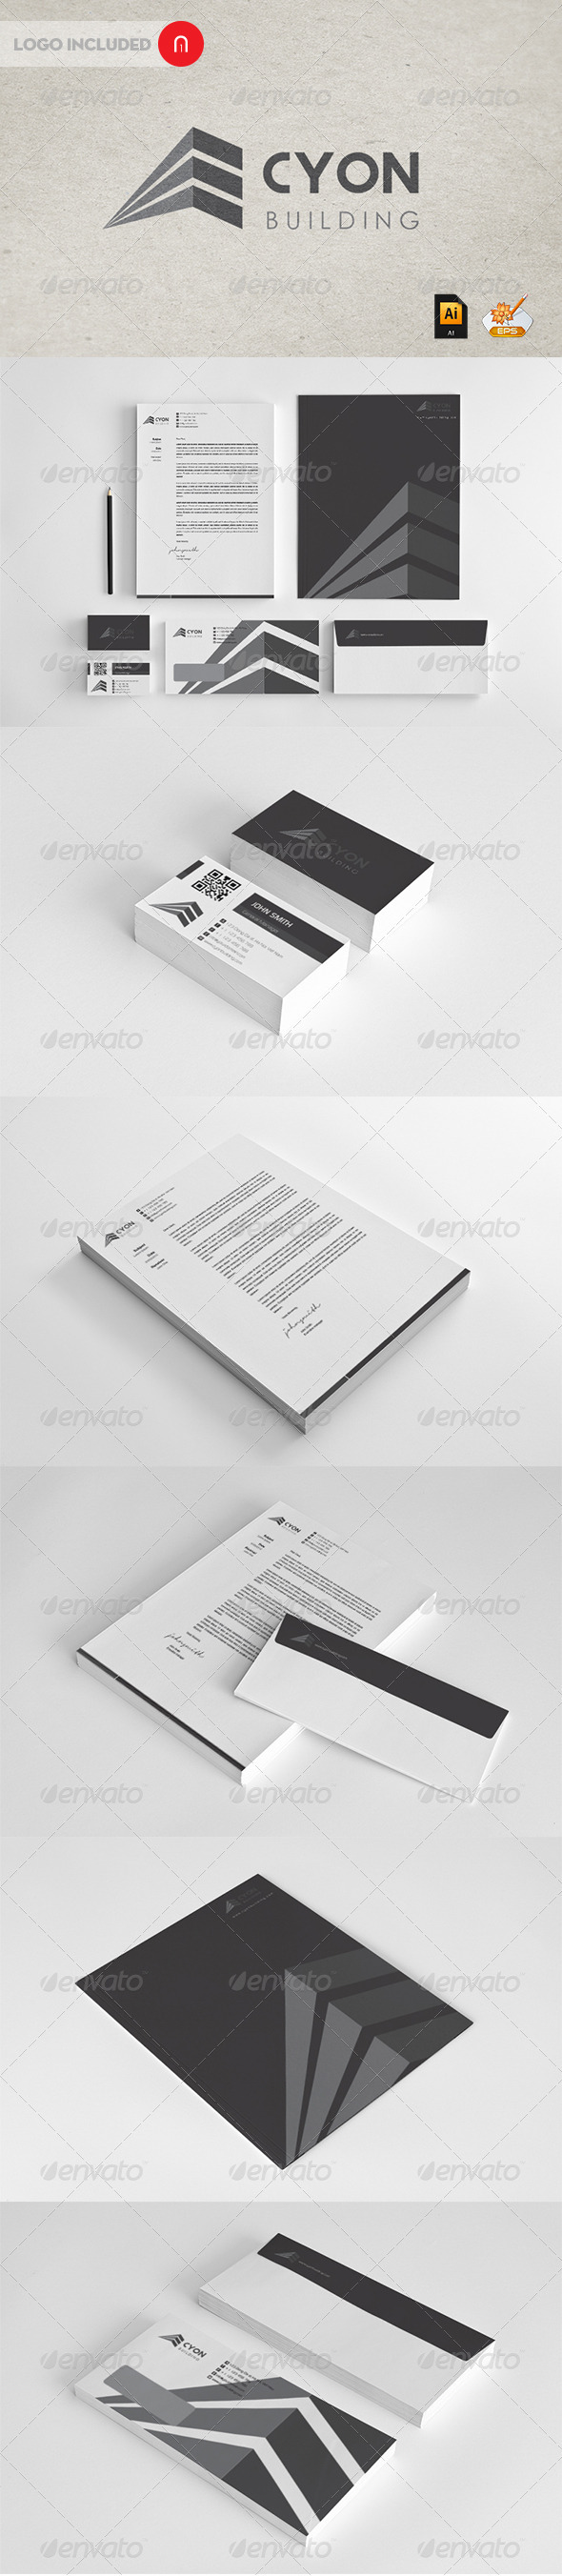 Cyon building professional Corporate Identity - Stationery Print Templates